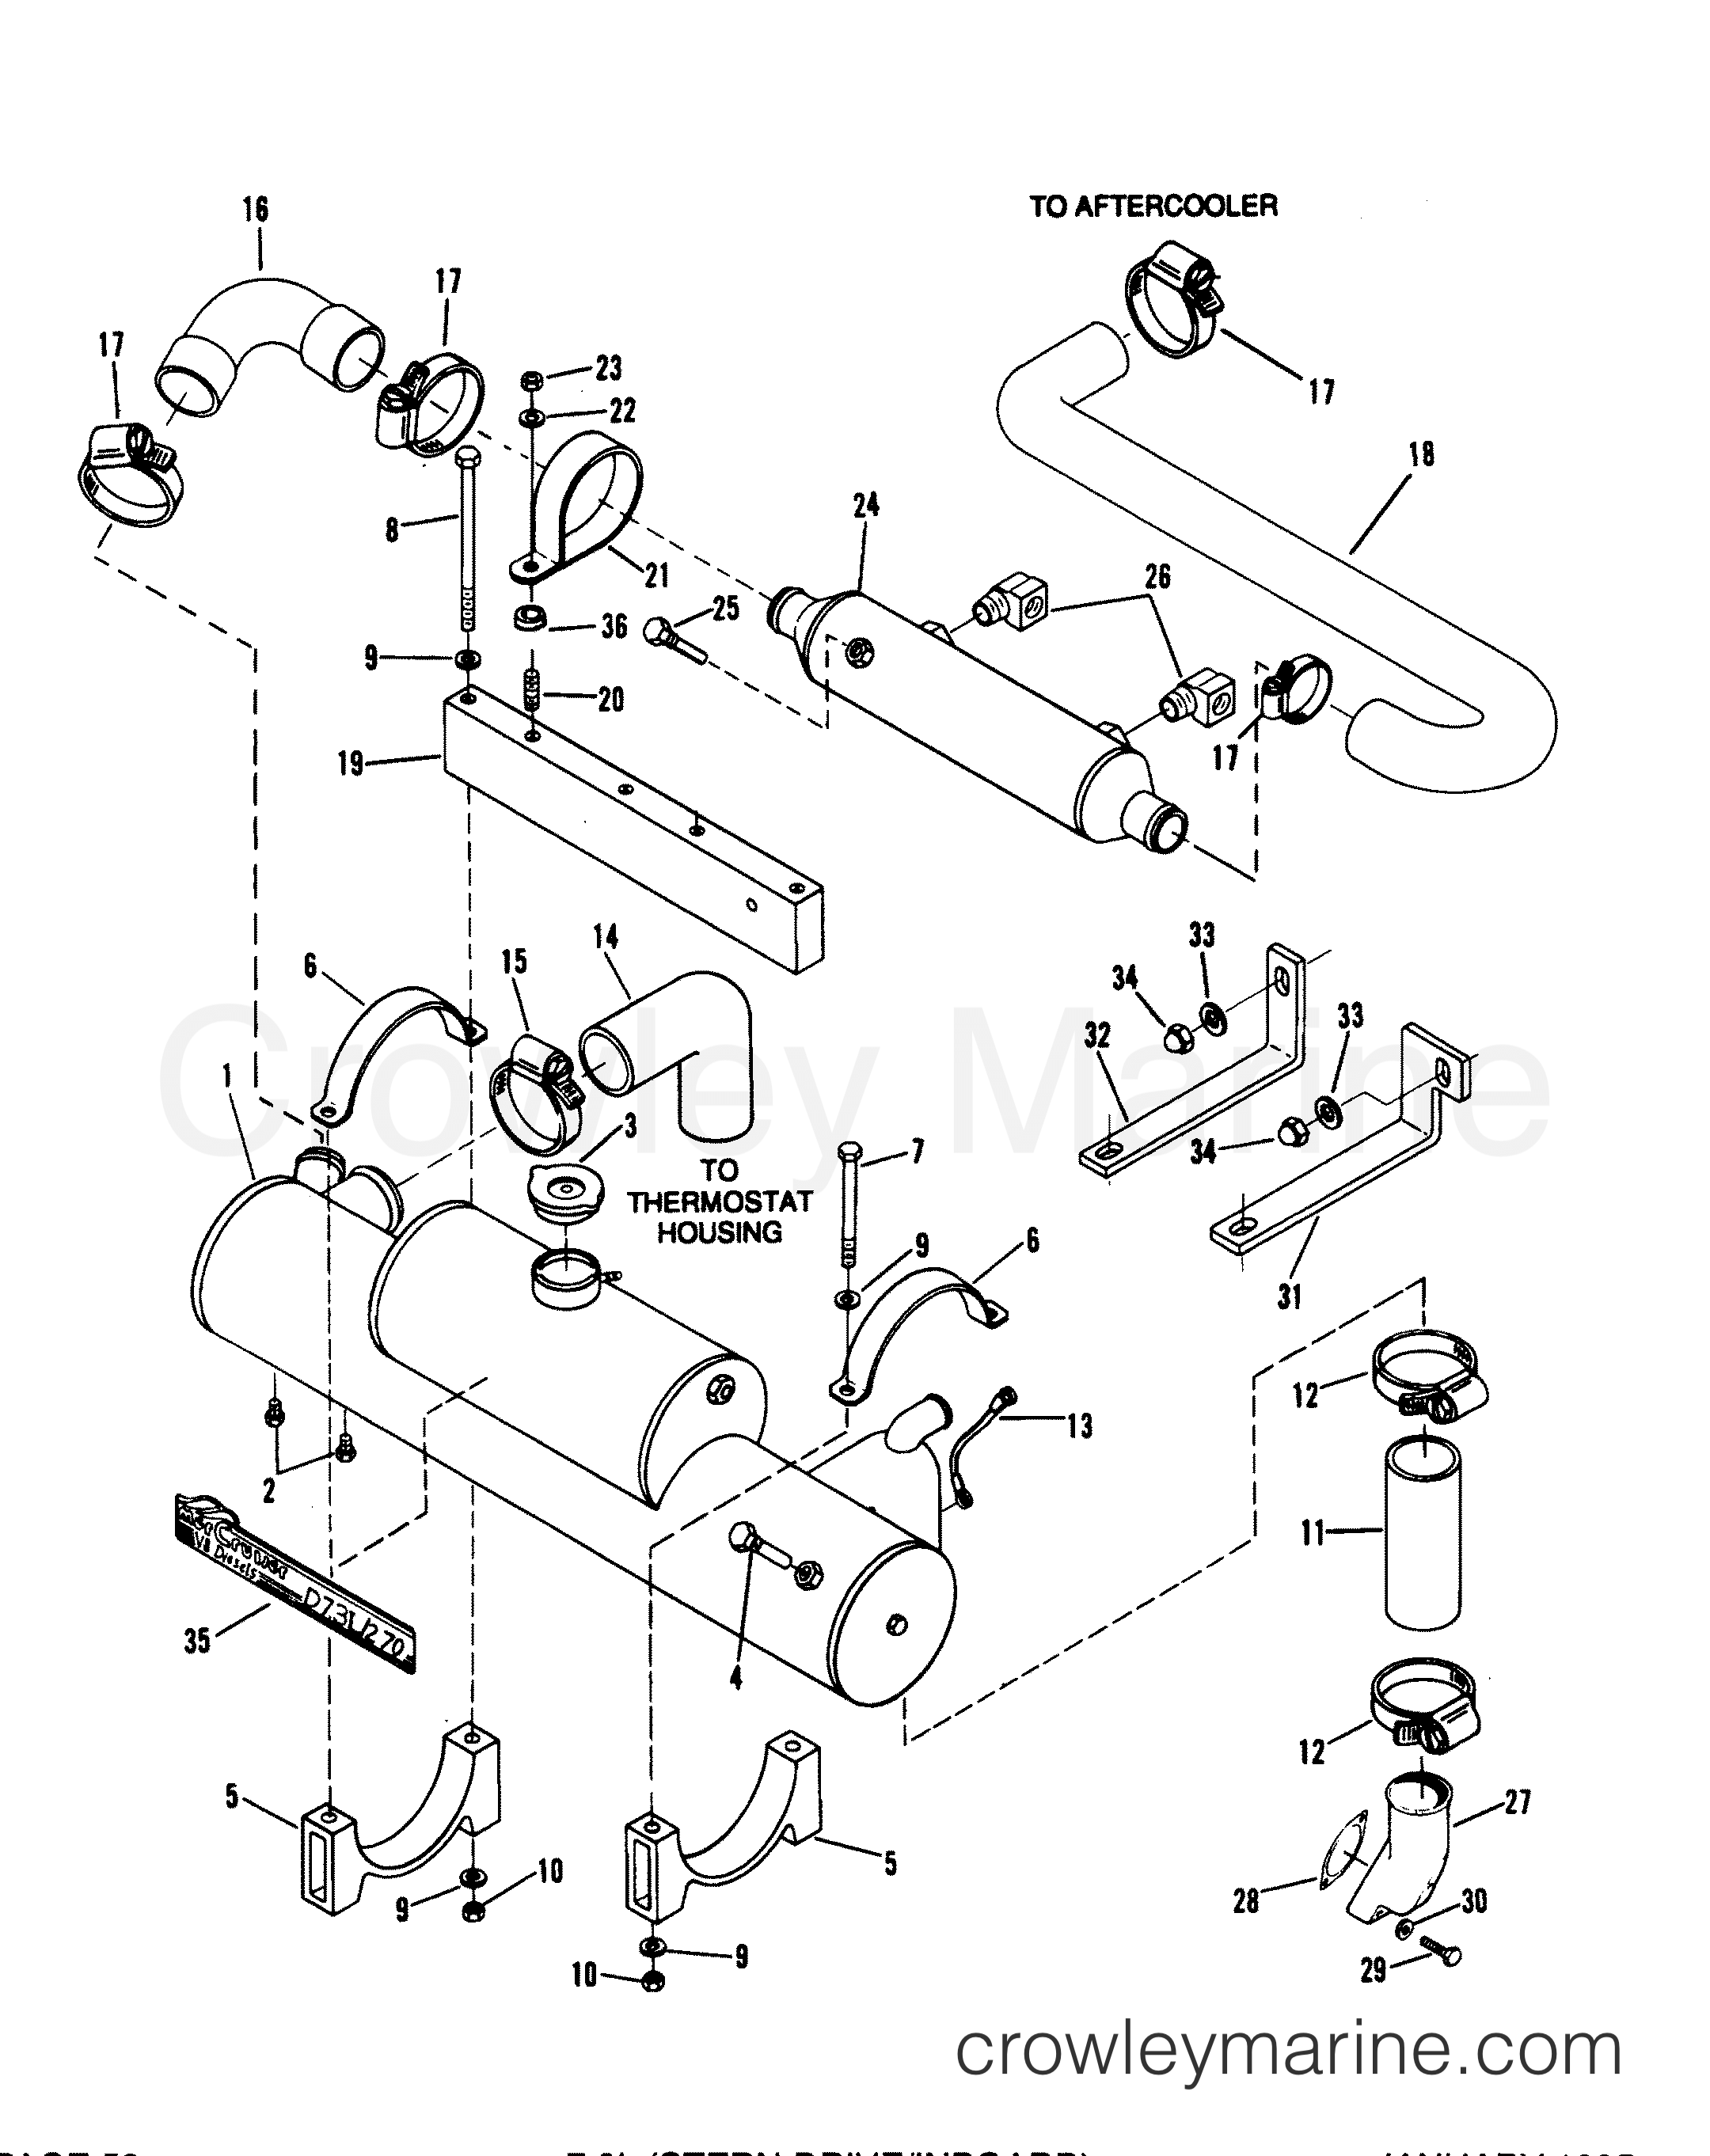 Heat Exchanger And Oil Cooler Stern Drive